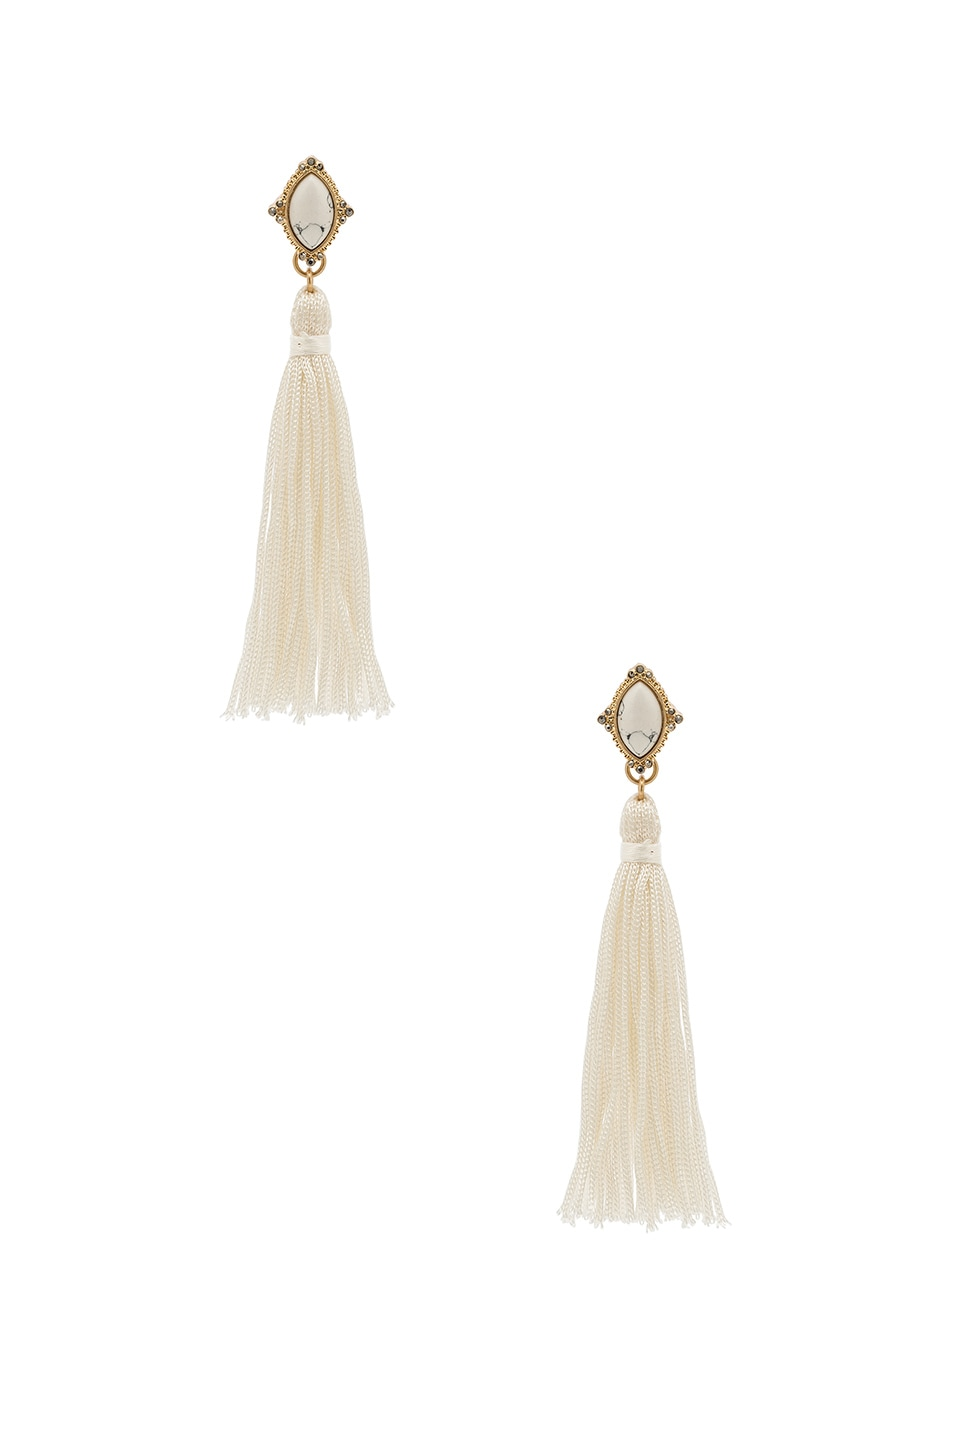 Samantha Wills Whisper Sea Earrings in Gold